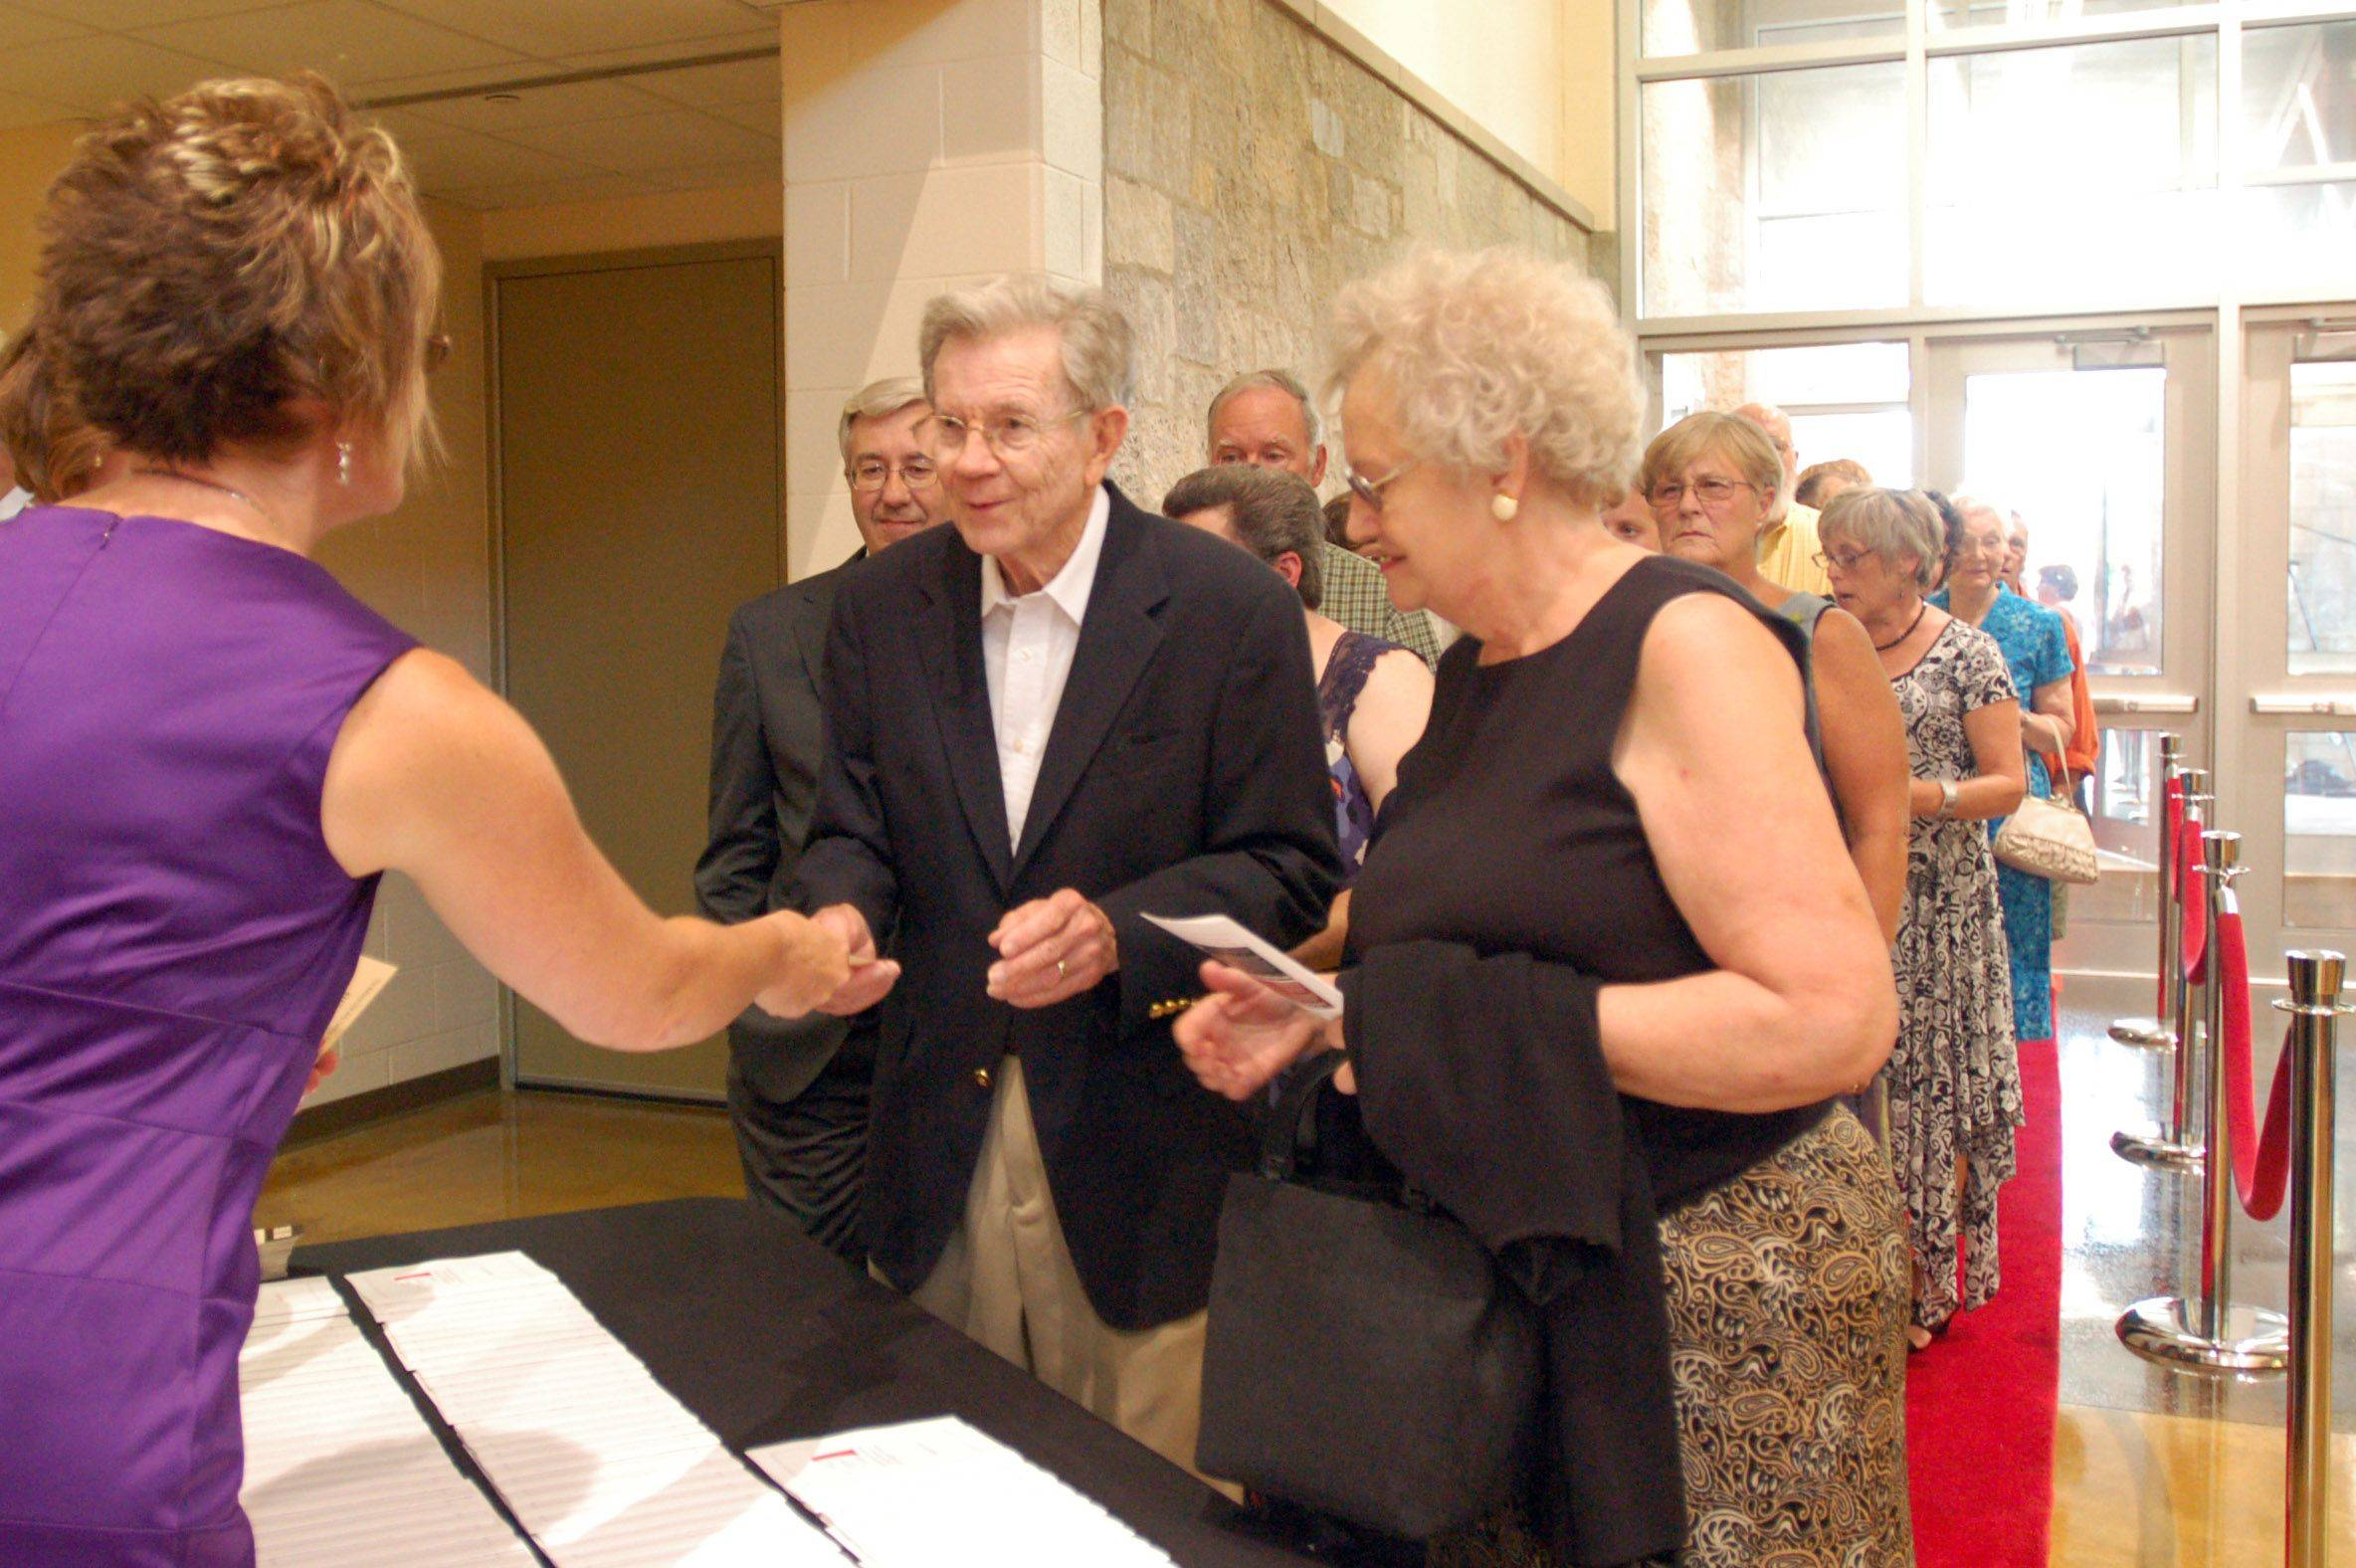 Rolla and Rosalind Swanson check in during the Batavia Fine Arts Centre's Red Carpet Gala opening on Saturday. The couple live a couple blocks from Batavia High School. The arts center is the school's first real auditorium, and will also serve as a community center for the city of Batavia.